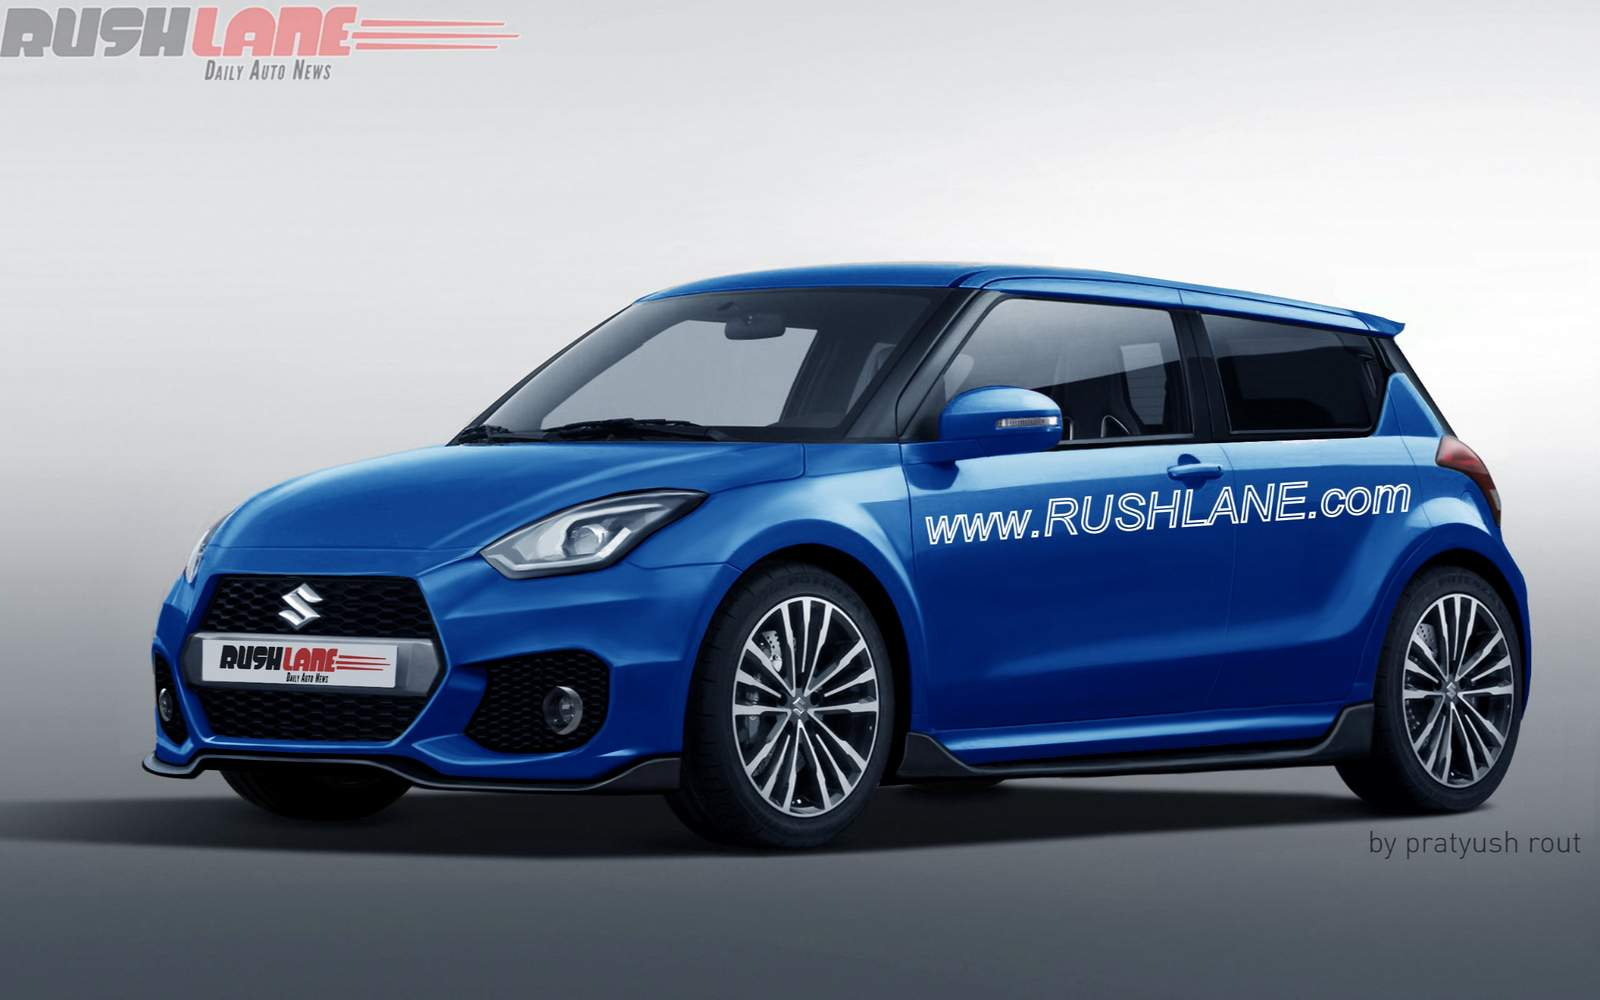 2017 Suzuki Swift Sport Blue Rendered Bharathautos Automobile 06 Subaru Forester Interior Wiring Diagram